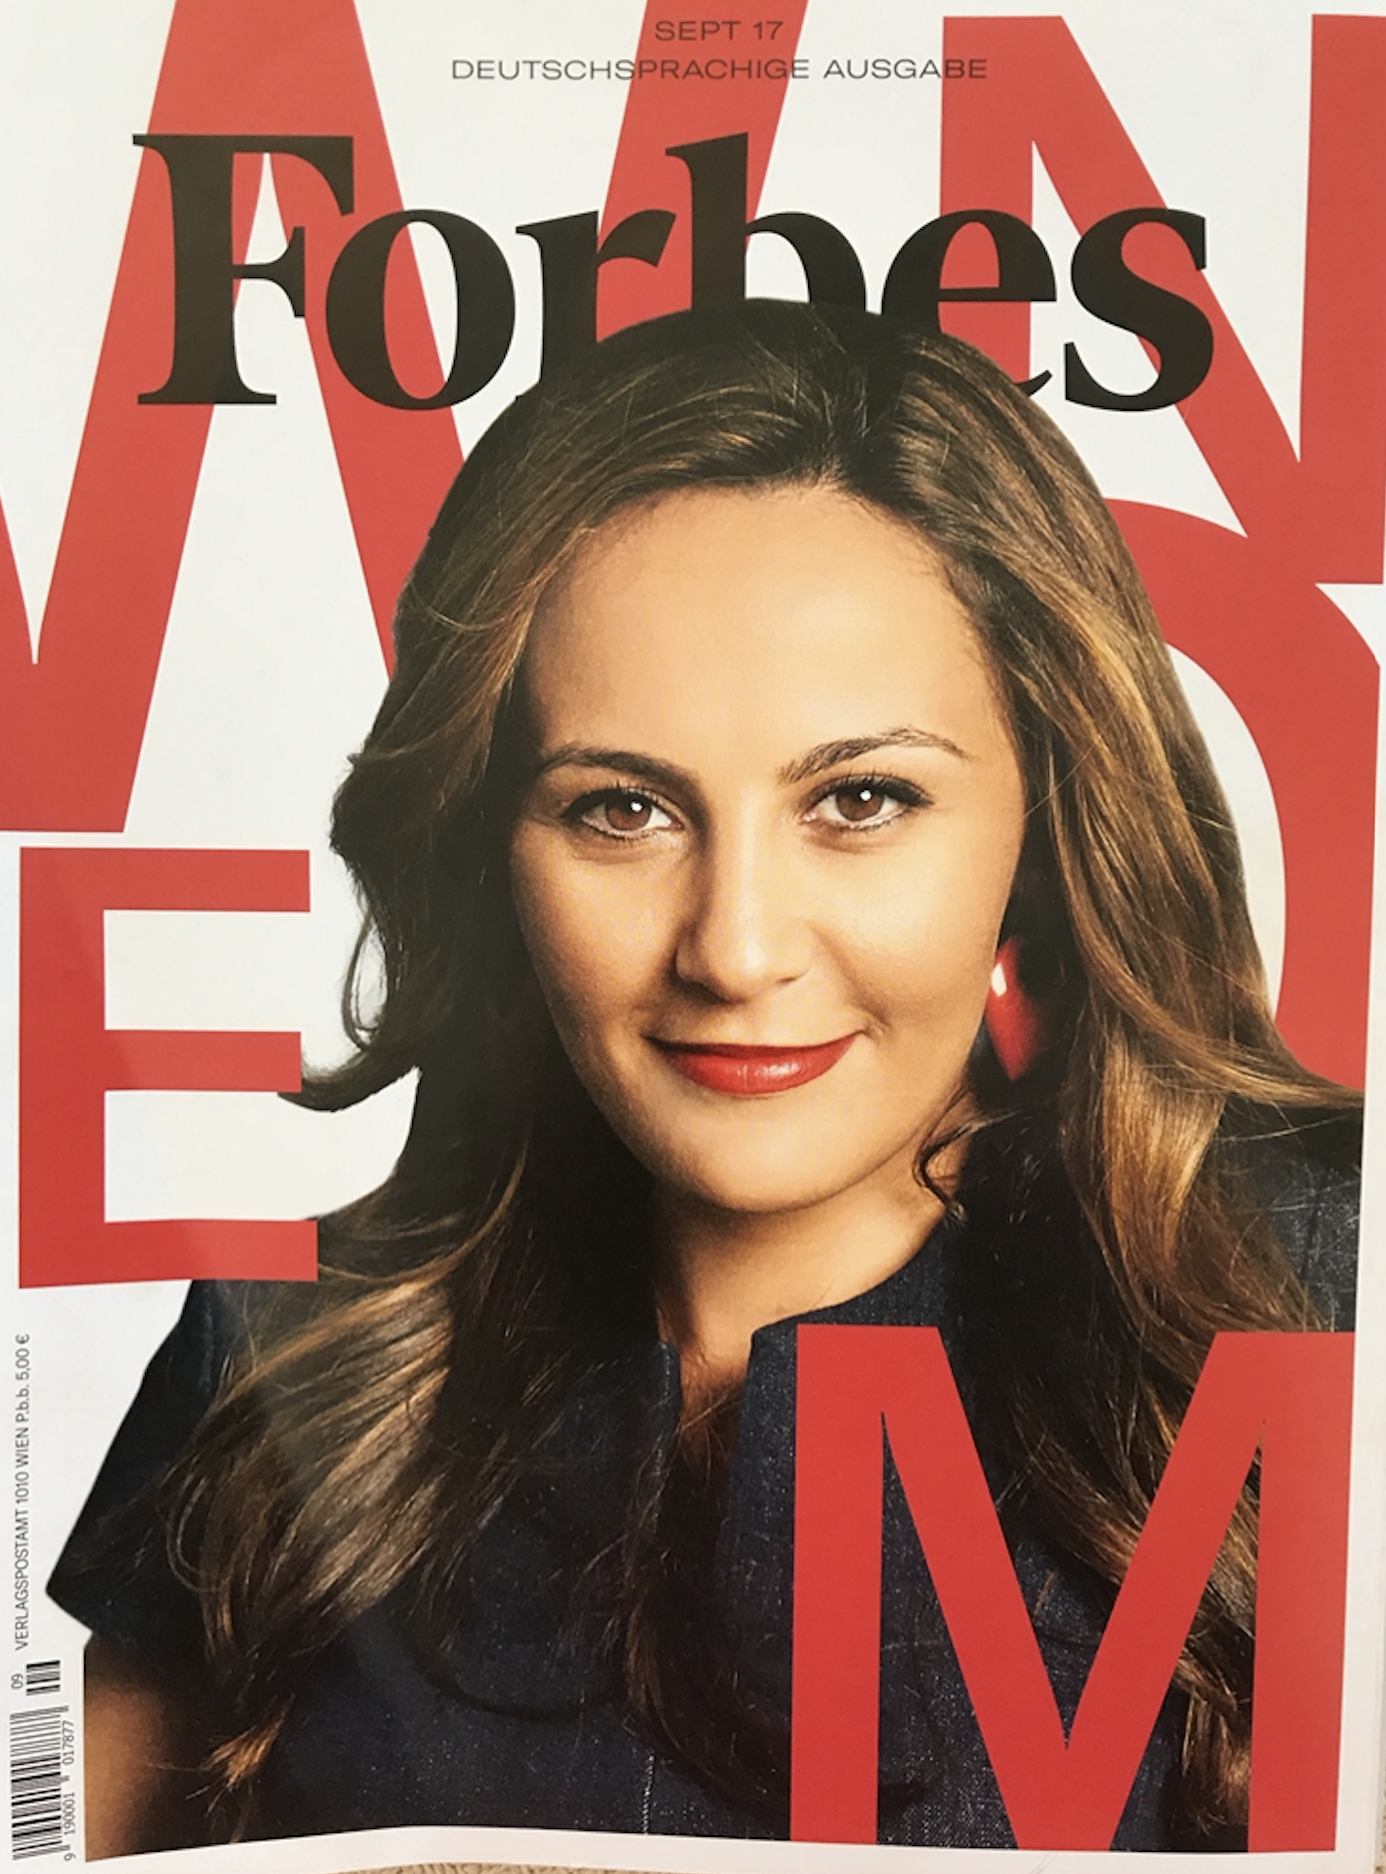 Forbes Magazine cover tandem nomads